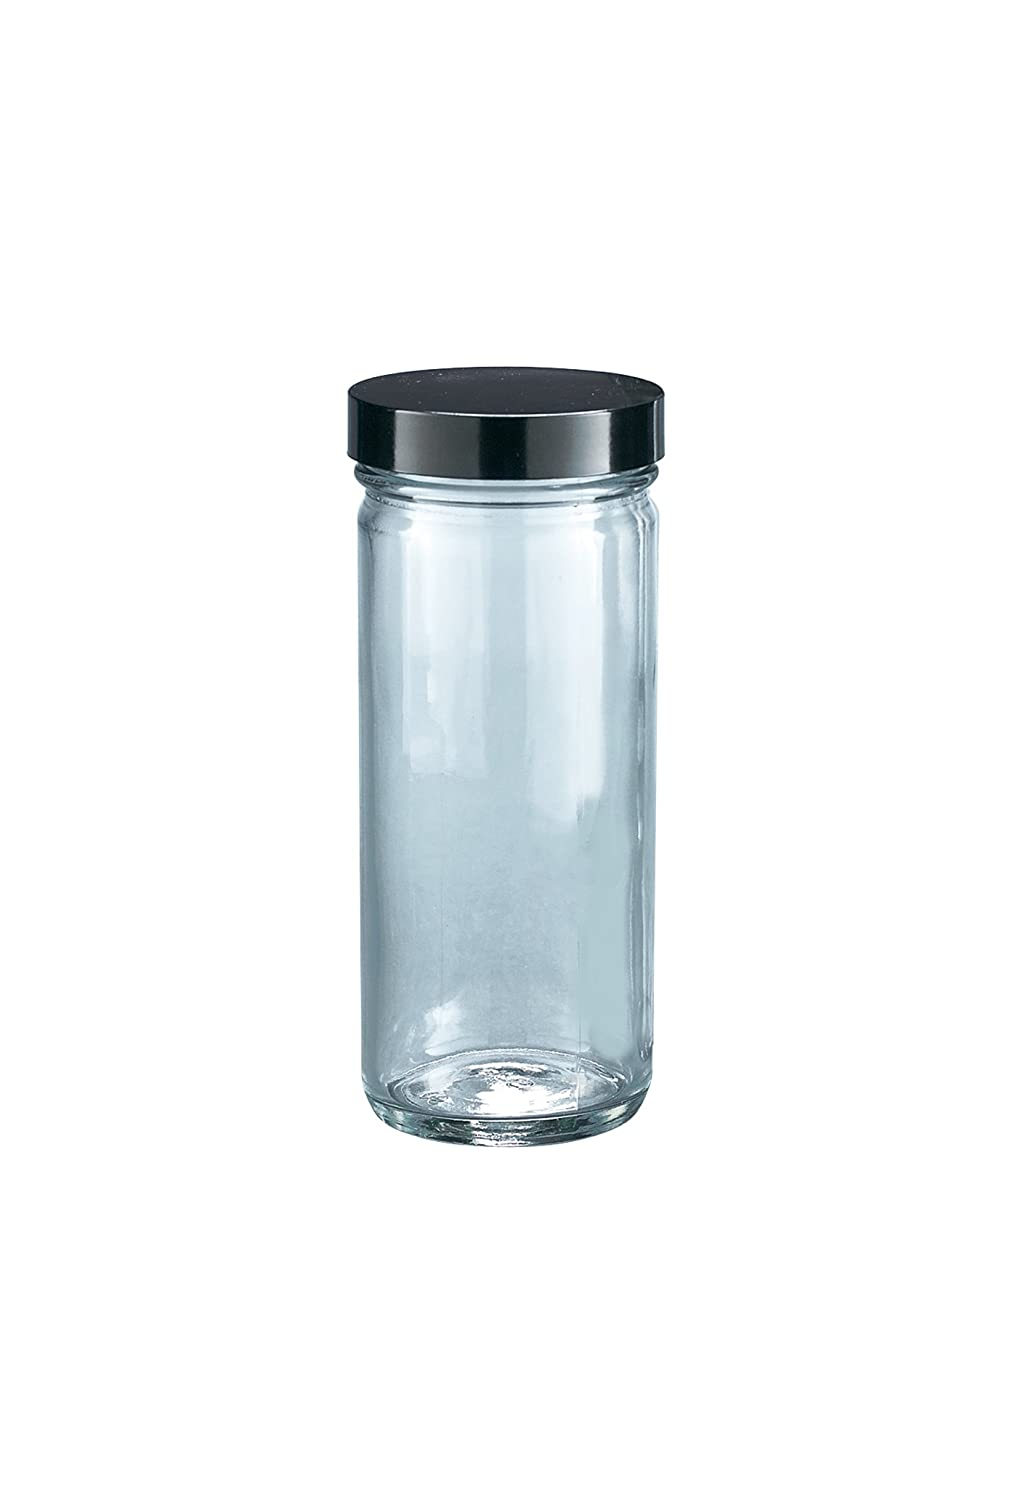 Case of 24 Kimble Type III Soda-Lime Glass Clear Straight-Sided Tall Jars without Cap Capacity 8oz